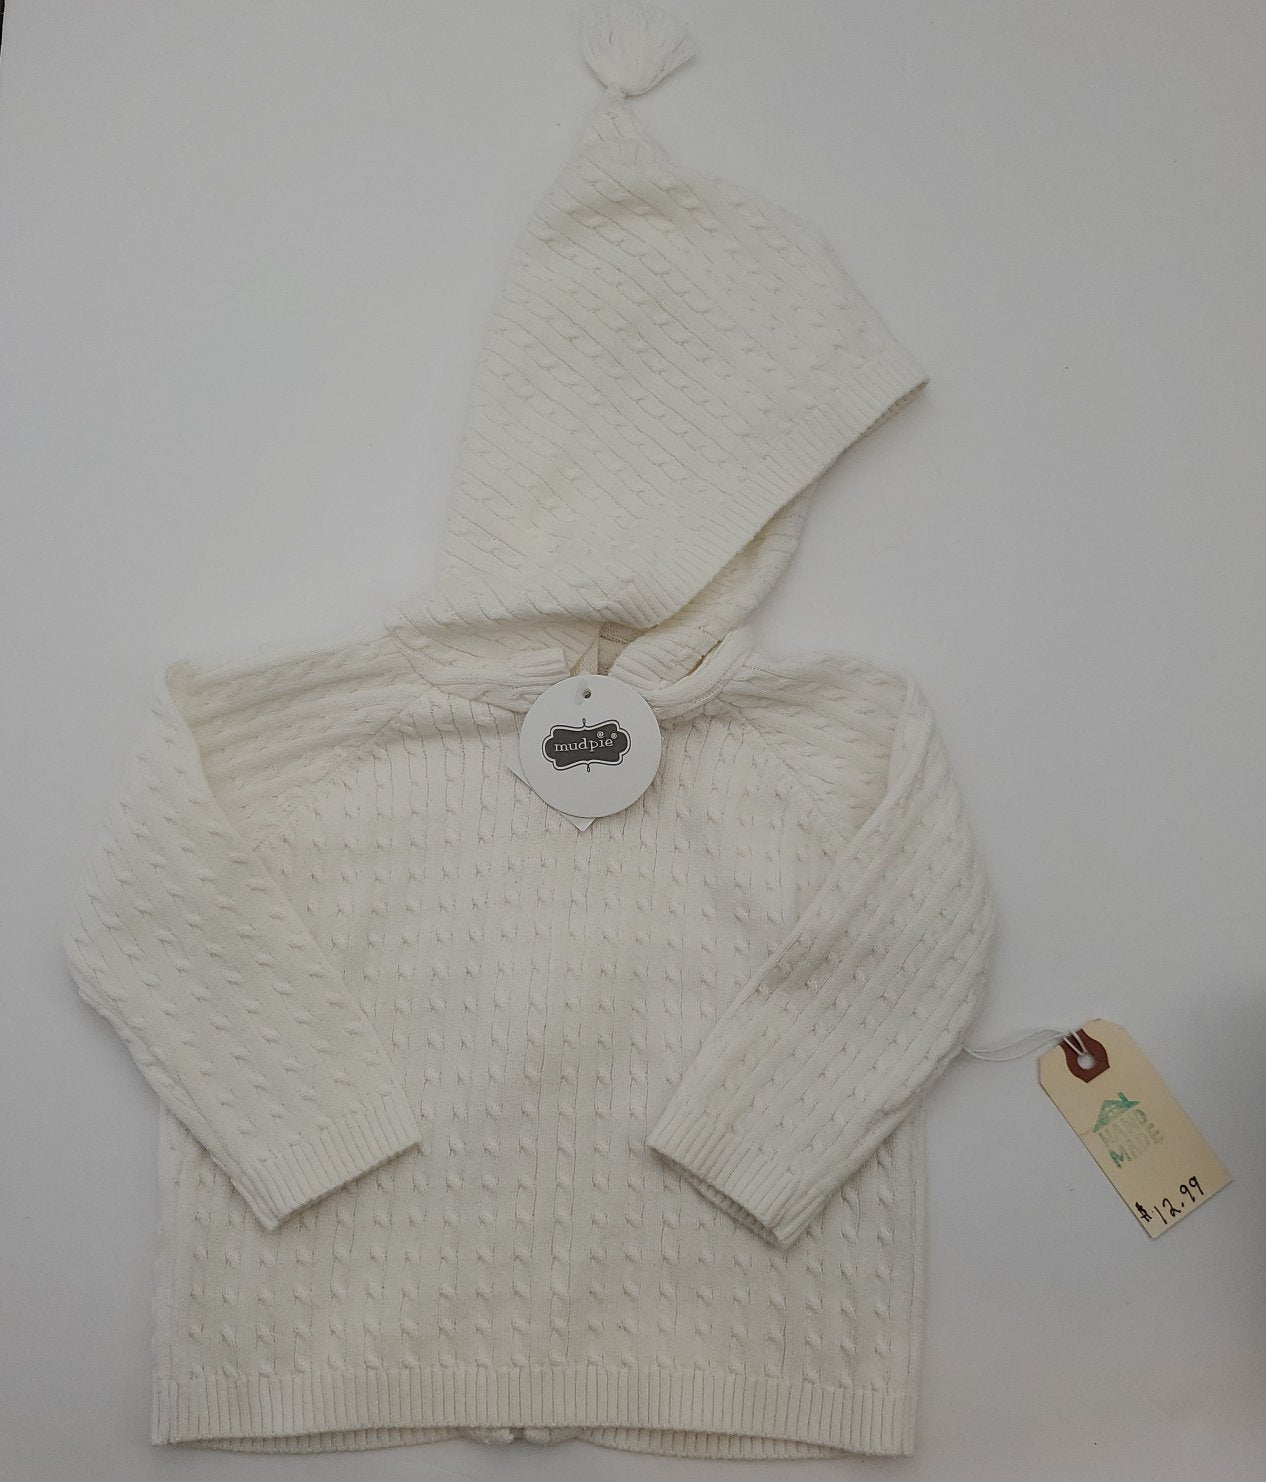 Resale 0-3 m Mud Pie Hooded Sweater - Ivory Lightweight Cable